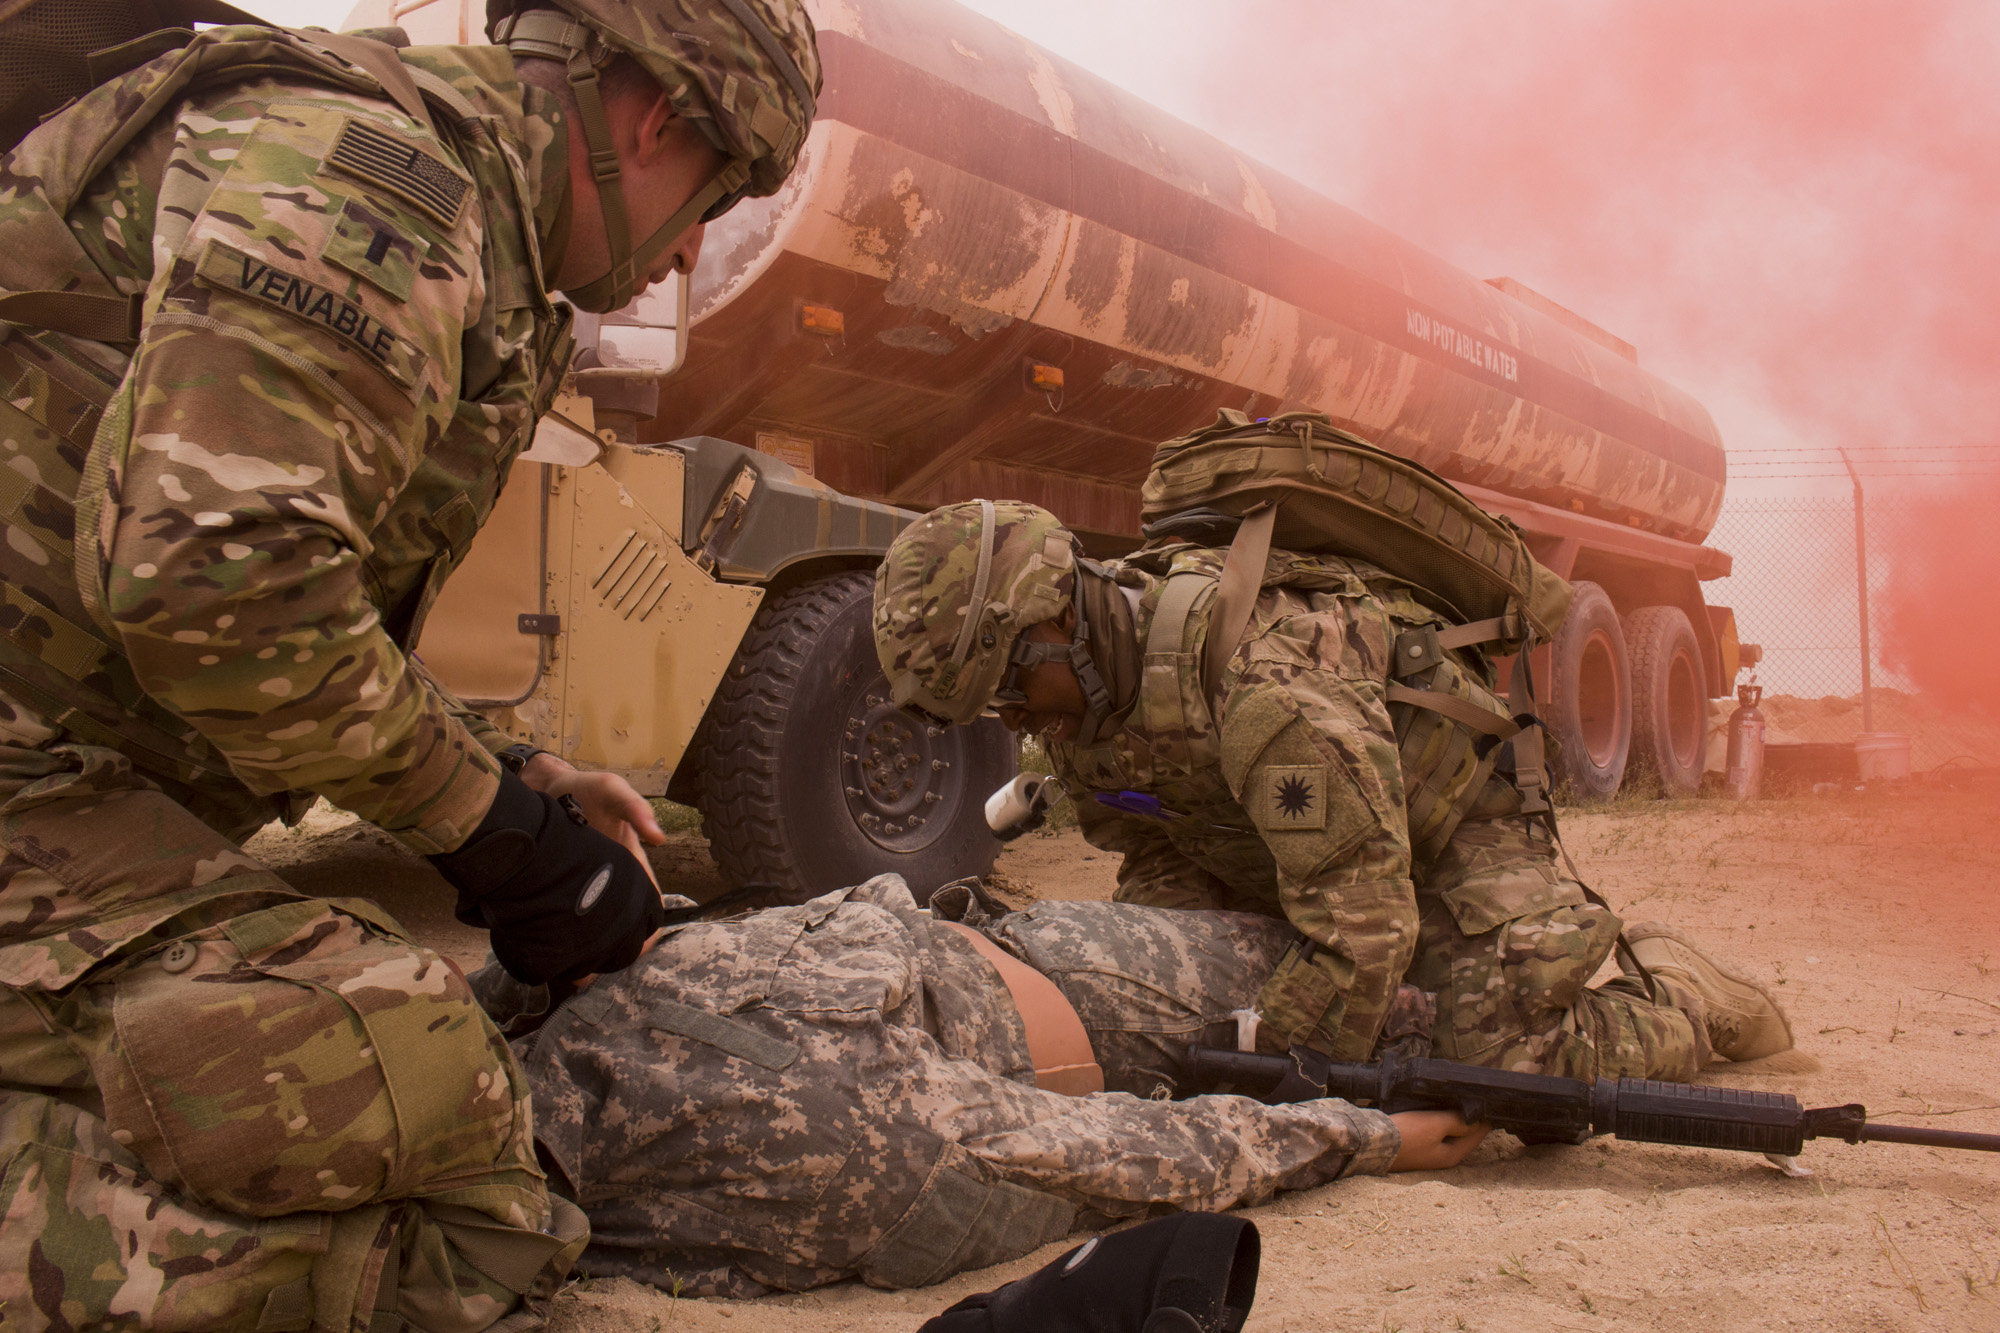 1st Lt. Chuck Venable, a resident in the 10th Combat Support Hospital, and Sgt. Ravalene Butler, aviation medical noncommissioned officer of the 140th Aviation Regiment, 40th Combat Aviation Brigade (CAB), treat a simulated patient at a tactical combat casualty care lane at Camp Buehring, Kuwait in February 2016. CSHs can treat any patient in theater and handle everything from dispensing prescriptions to performing oral surgery. (U.S. Army photo by Staff Sgt. Ian M. Kummer, 40th CAB Public Affairs)